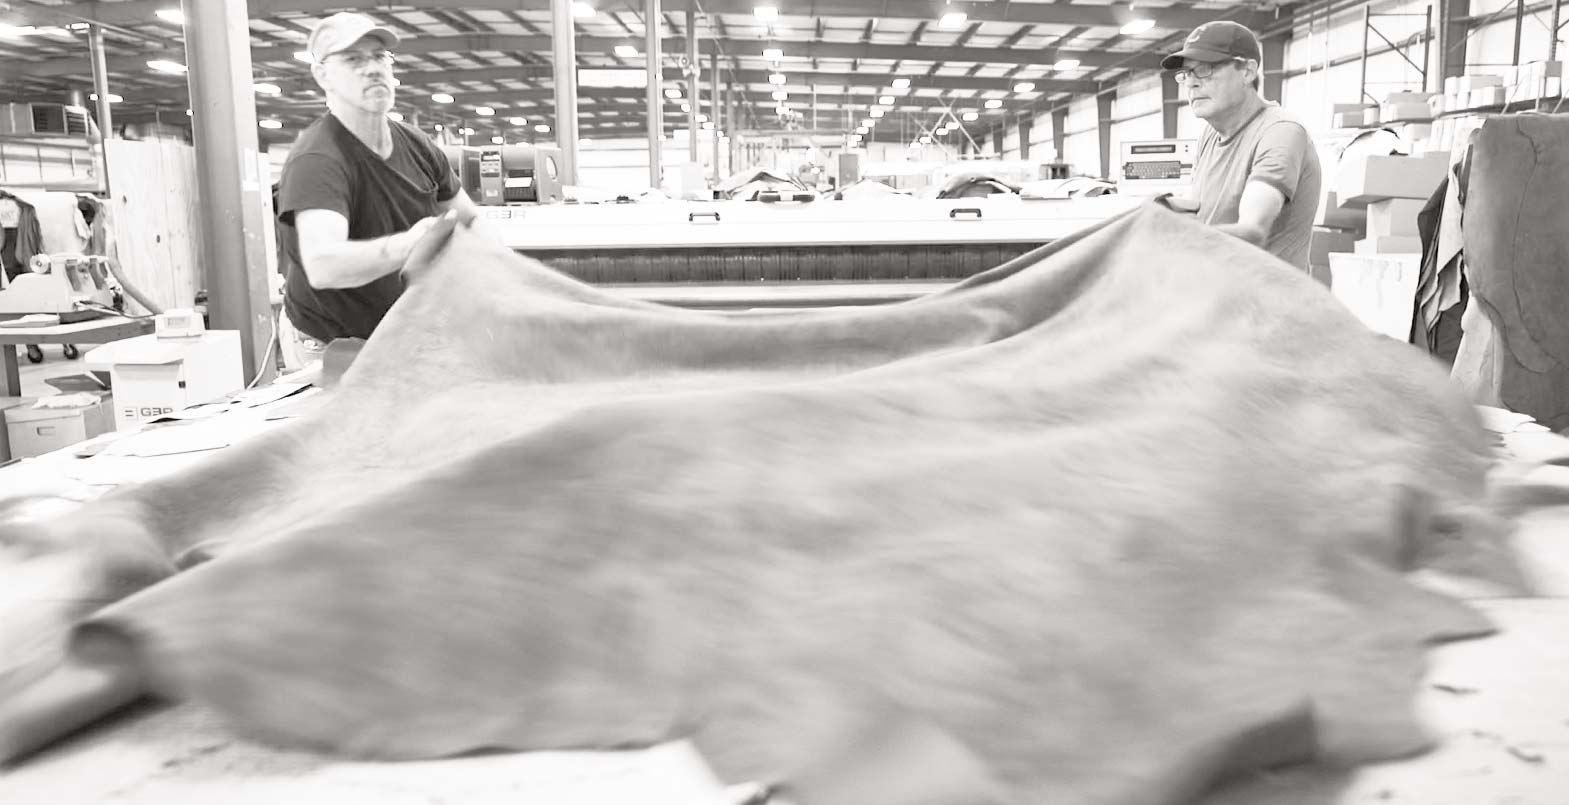 sheet of leather being produced